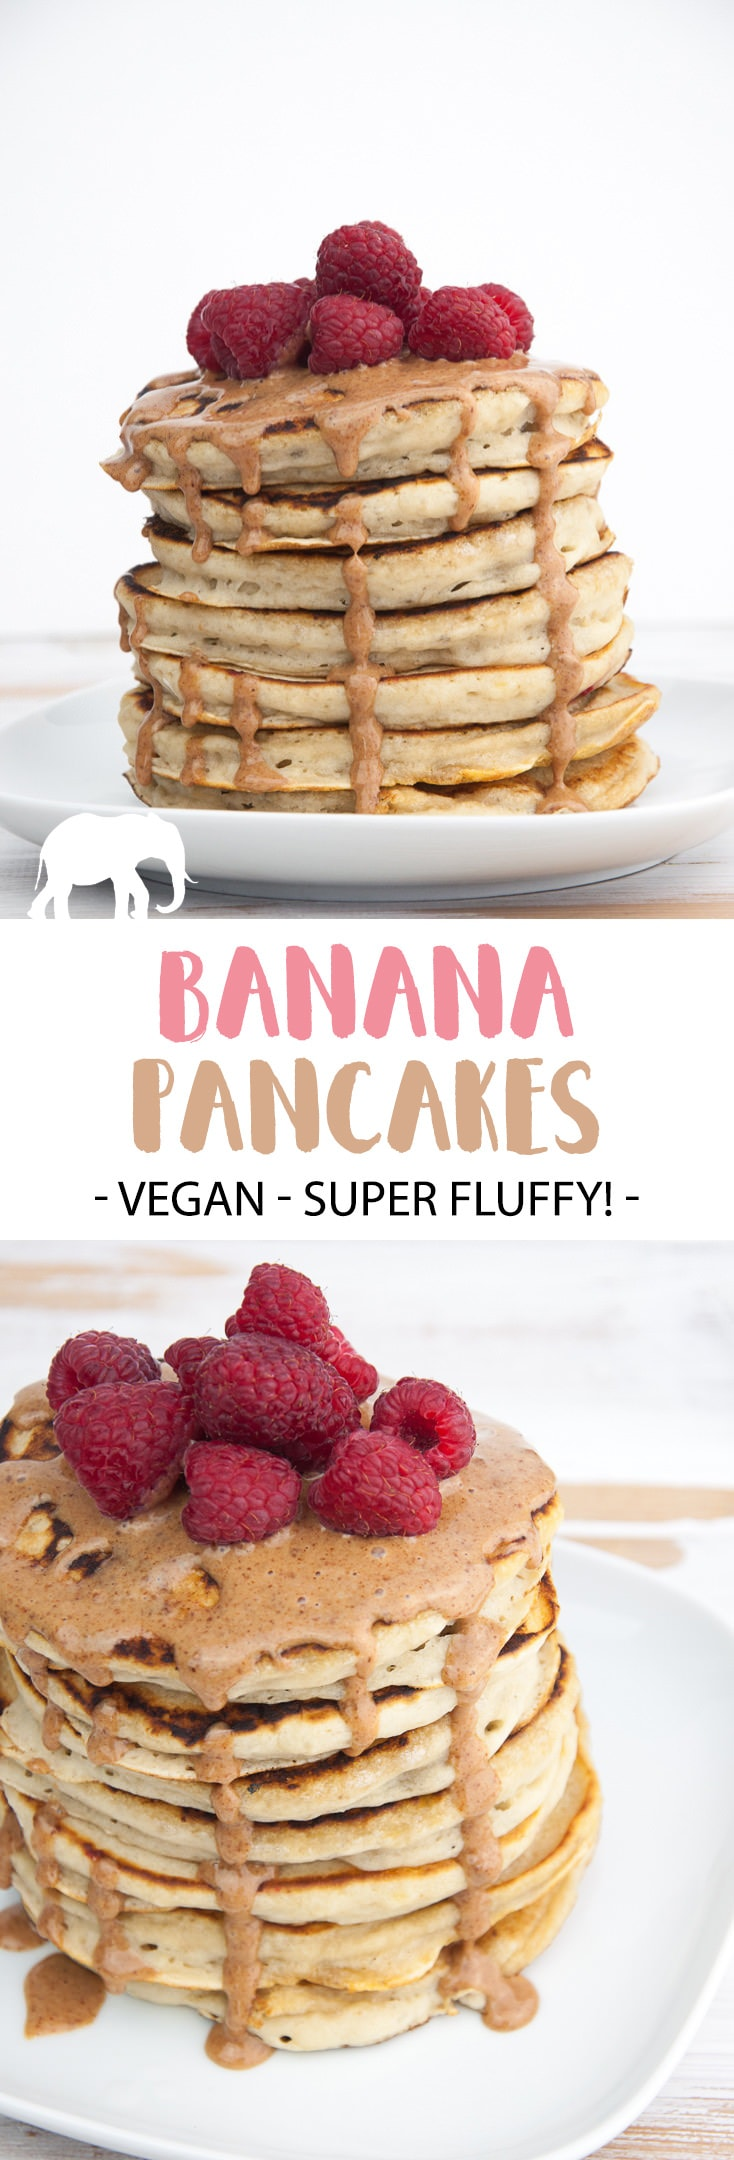 Fluffy Vegan Banana Pancakes topped with almond butter and raspberries. Easy and quick to make! The perfect Sunday breakfast! | ElephantasticVegan.com #vegan #pancakes #veganpancakes #breakfast